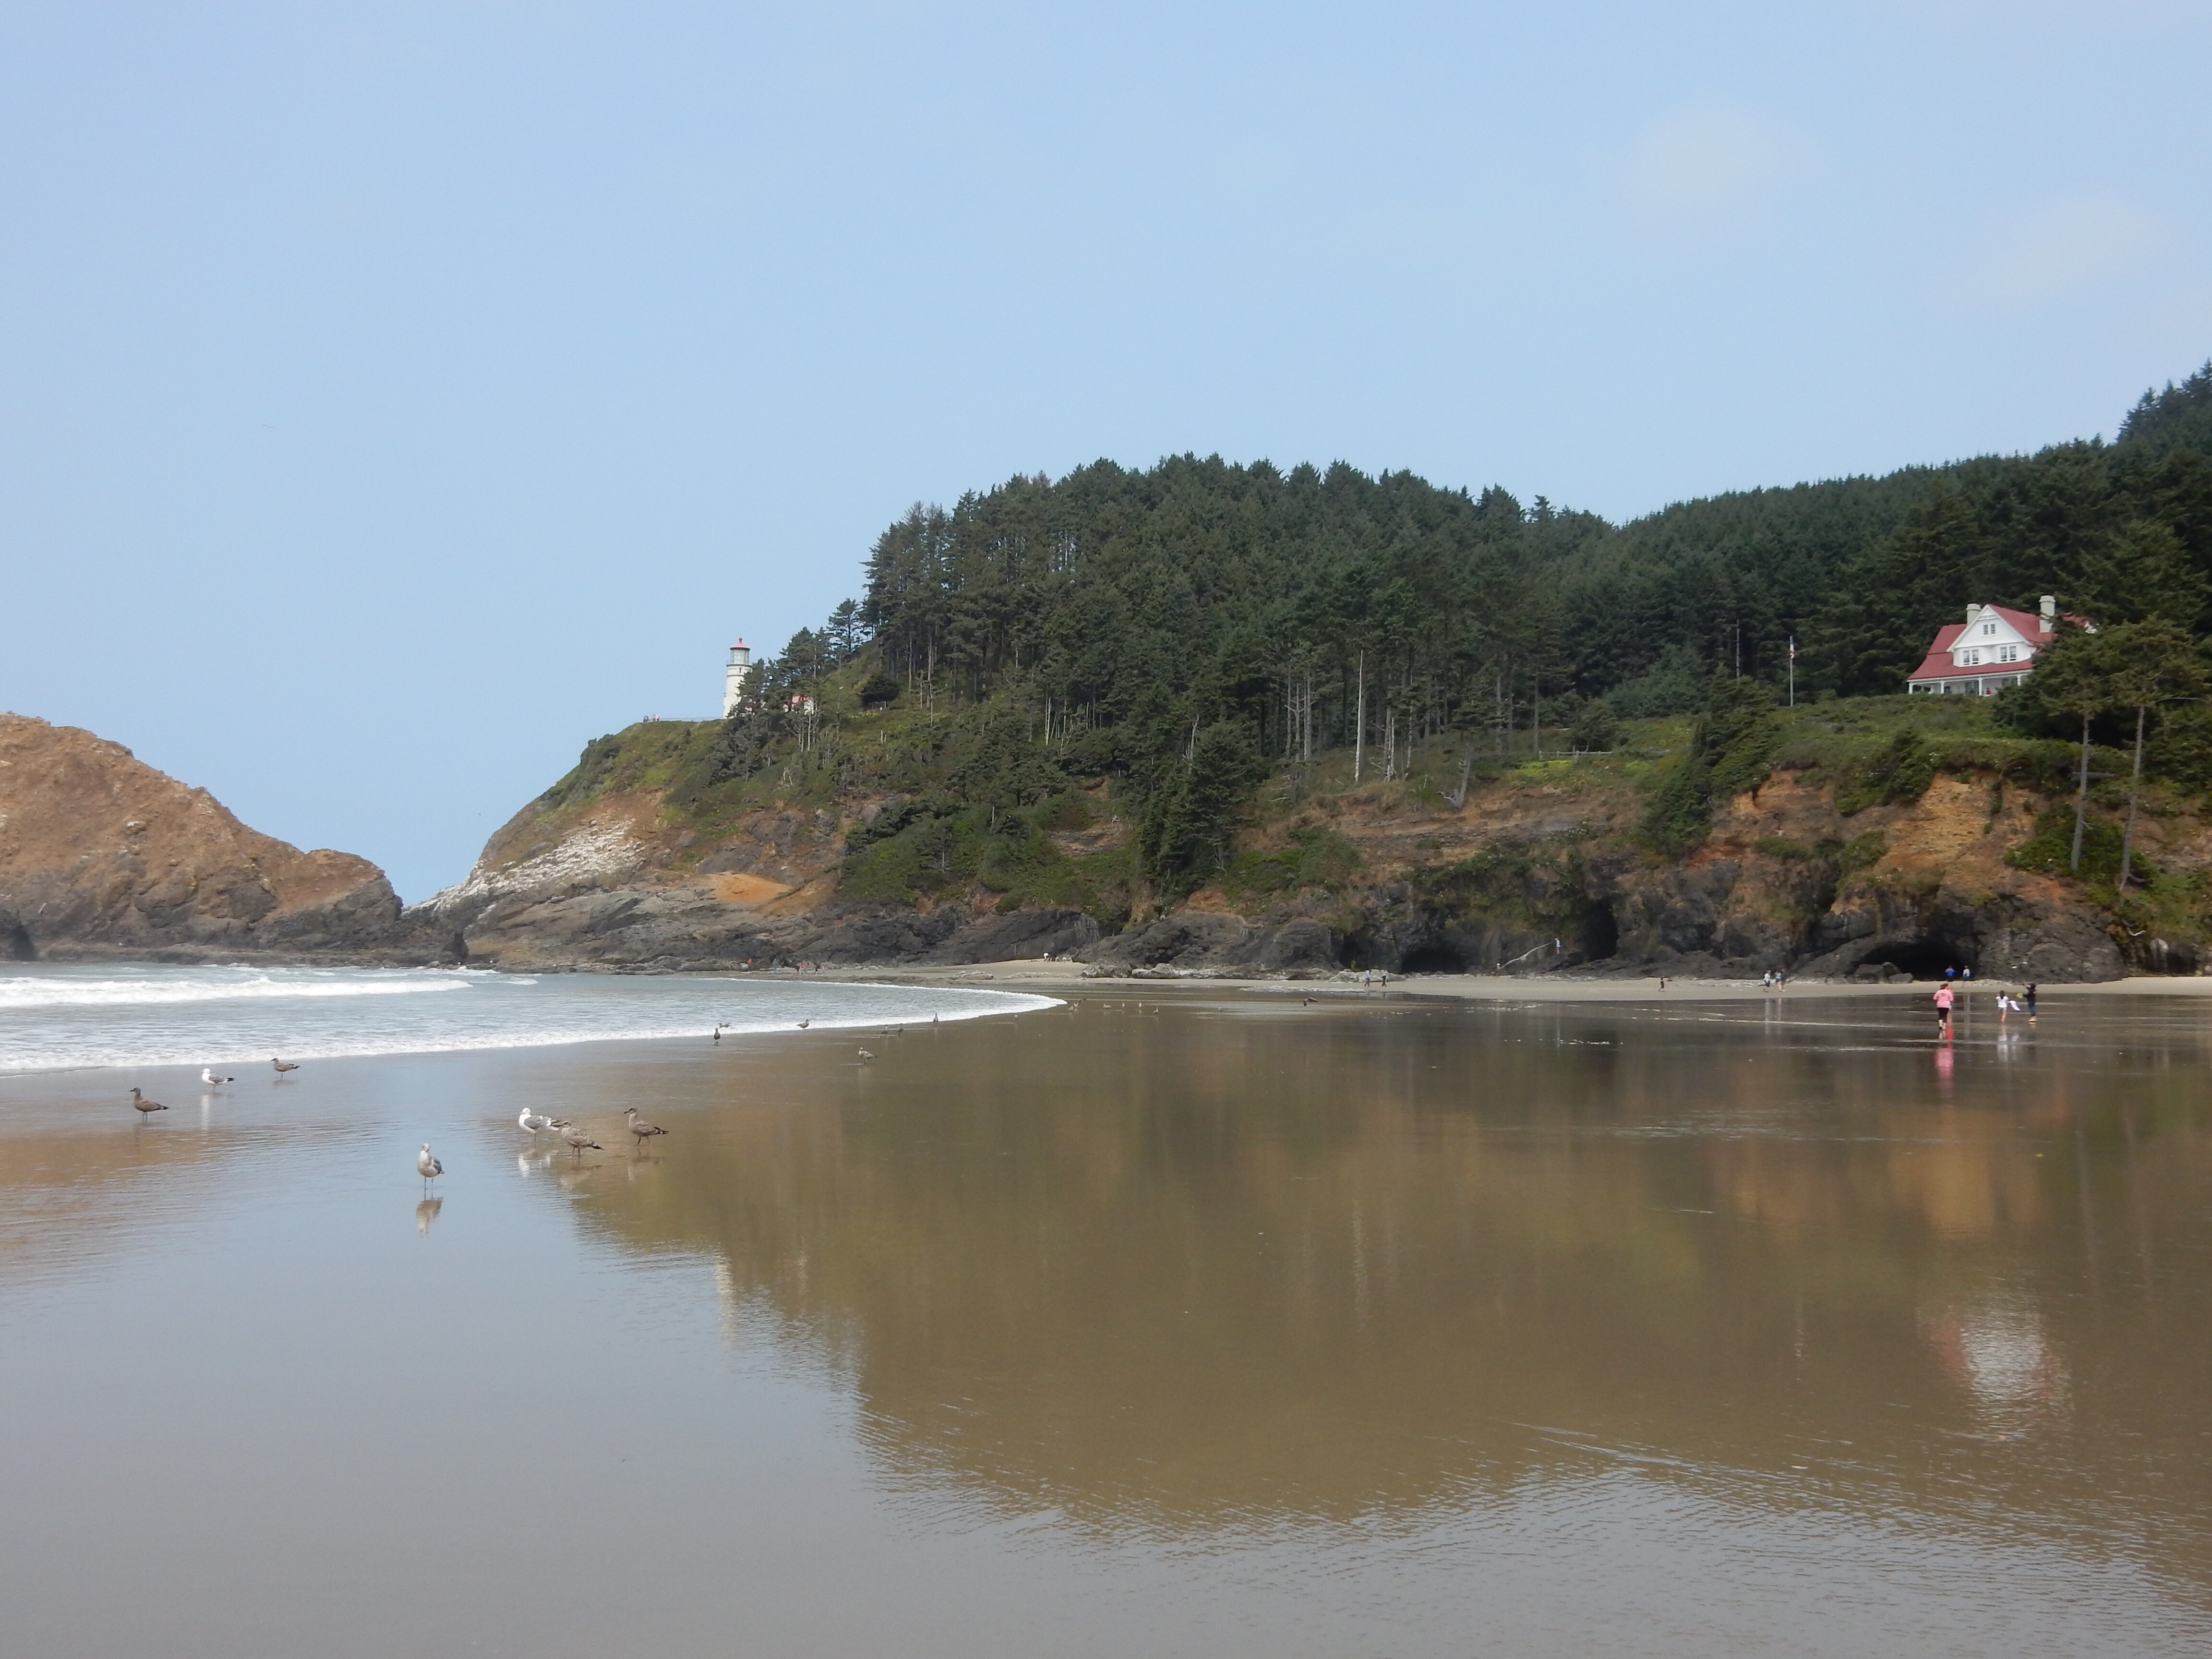 A view of the Heceta Head lighthouse and caretaker's residence from the nearby beach.